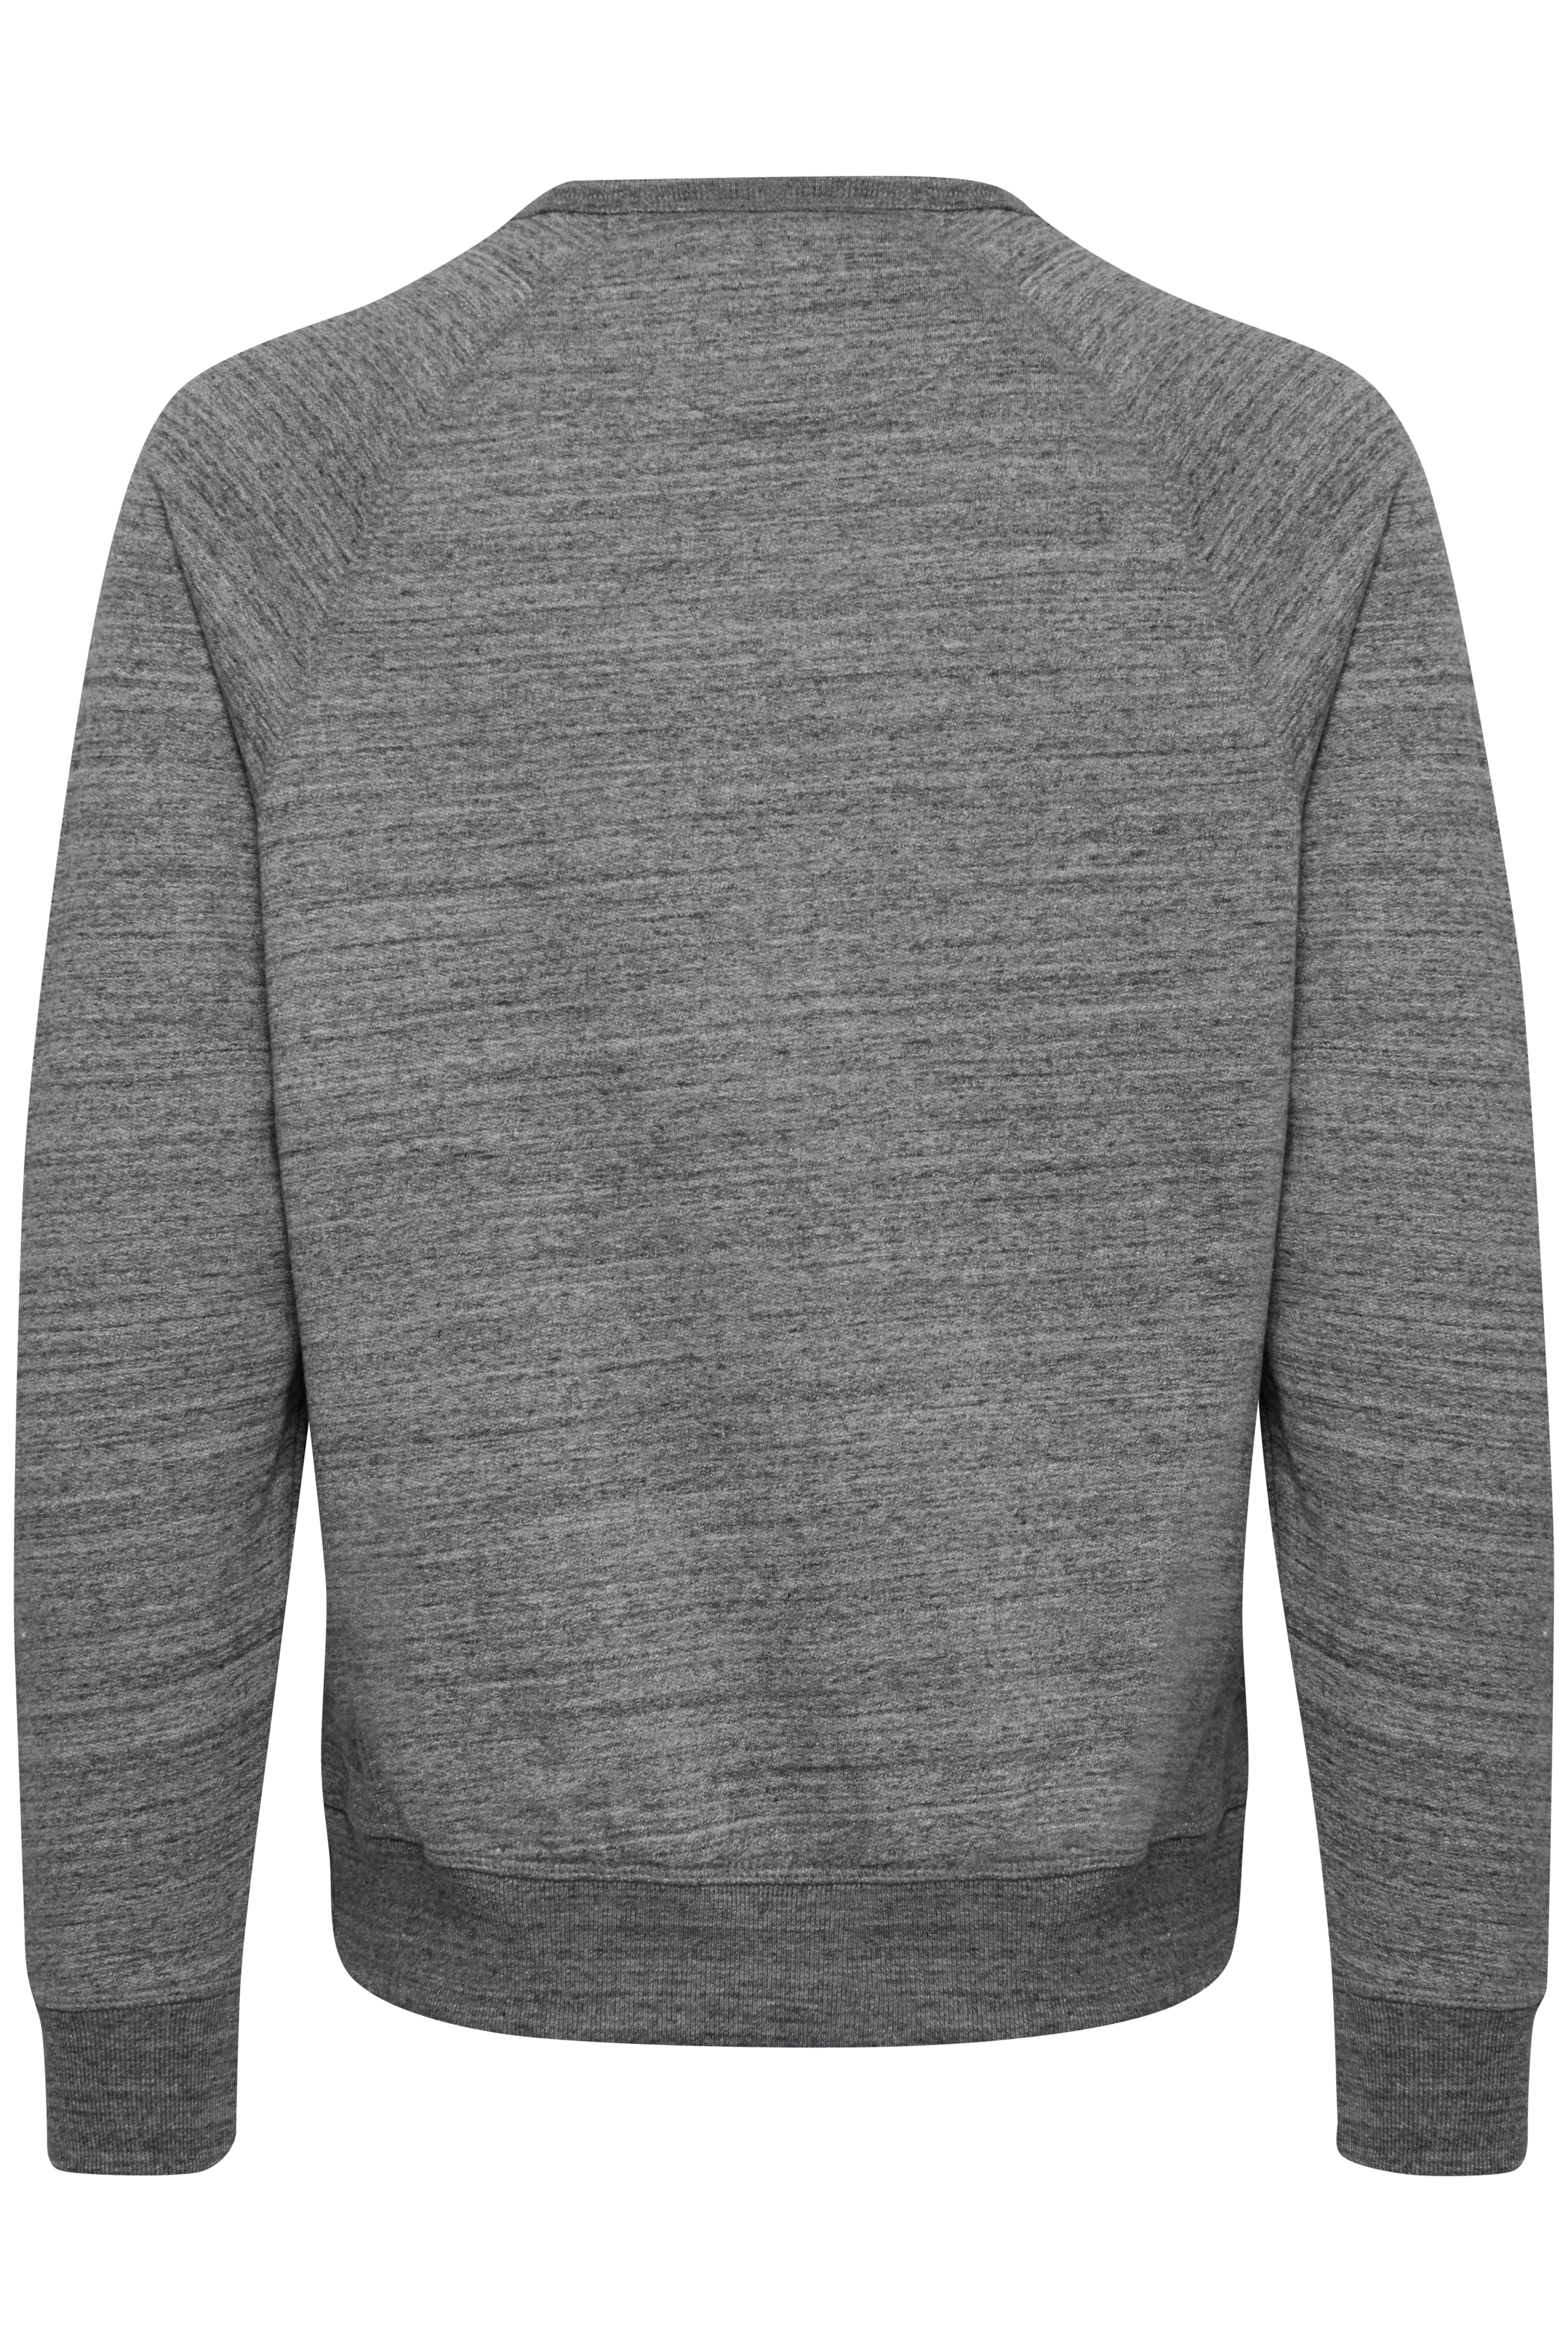 Pewter mix Sweatshirt – Køb Pewter mix Sweatshirt fra str. S-3XL her